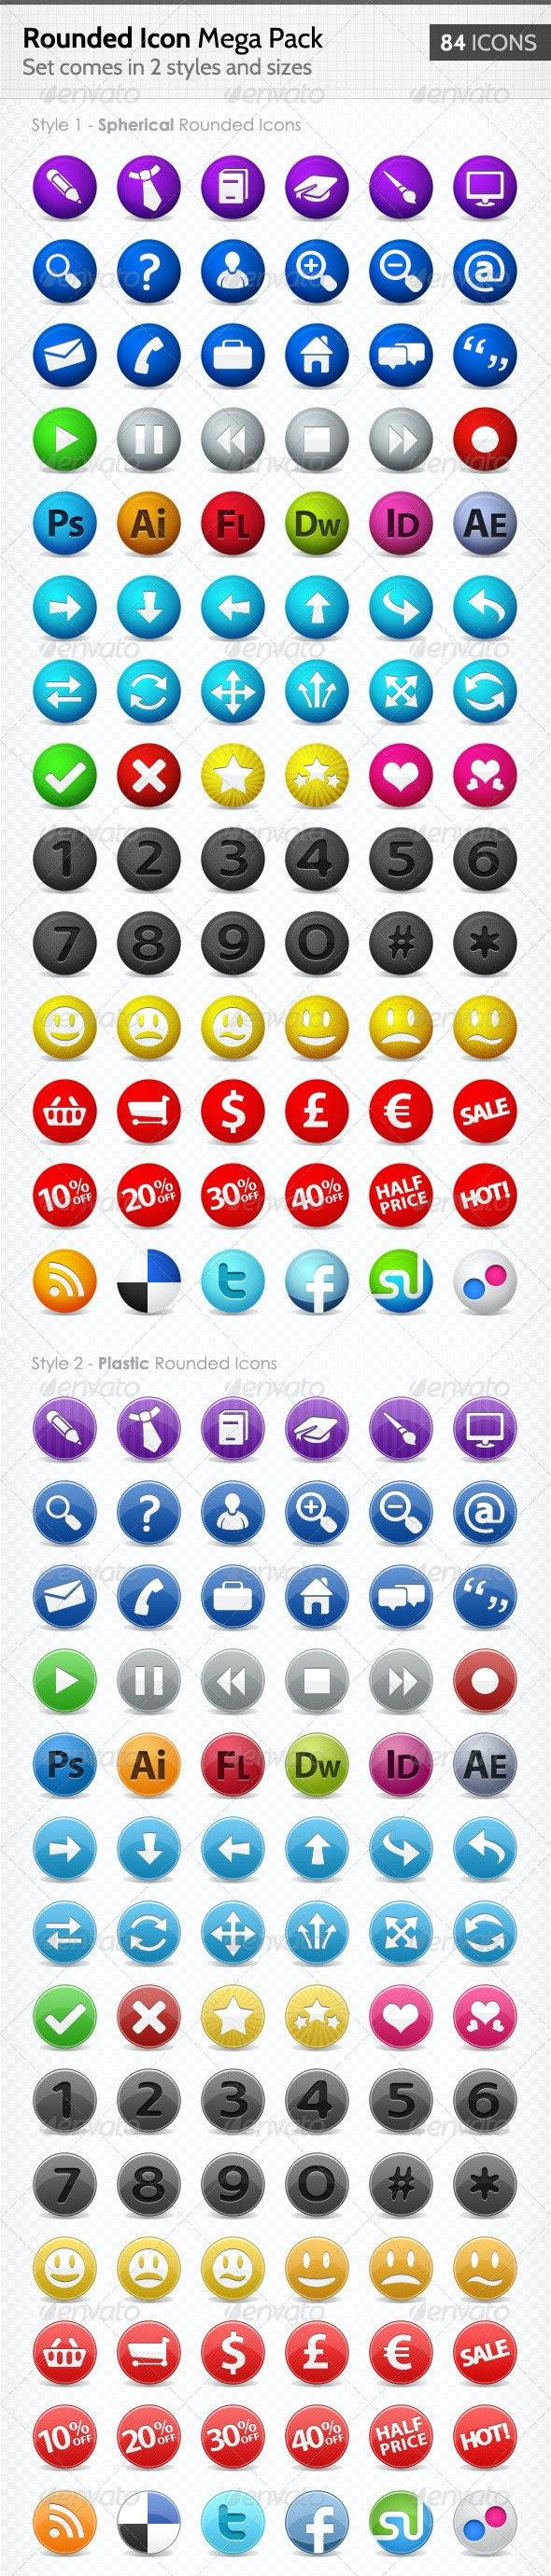 Rounded Web Icons - Mega Pack - Web Icons